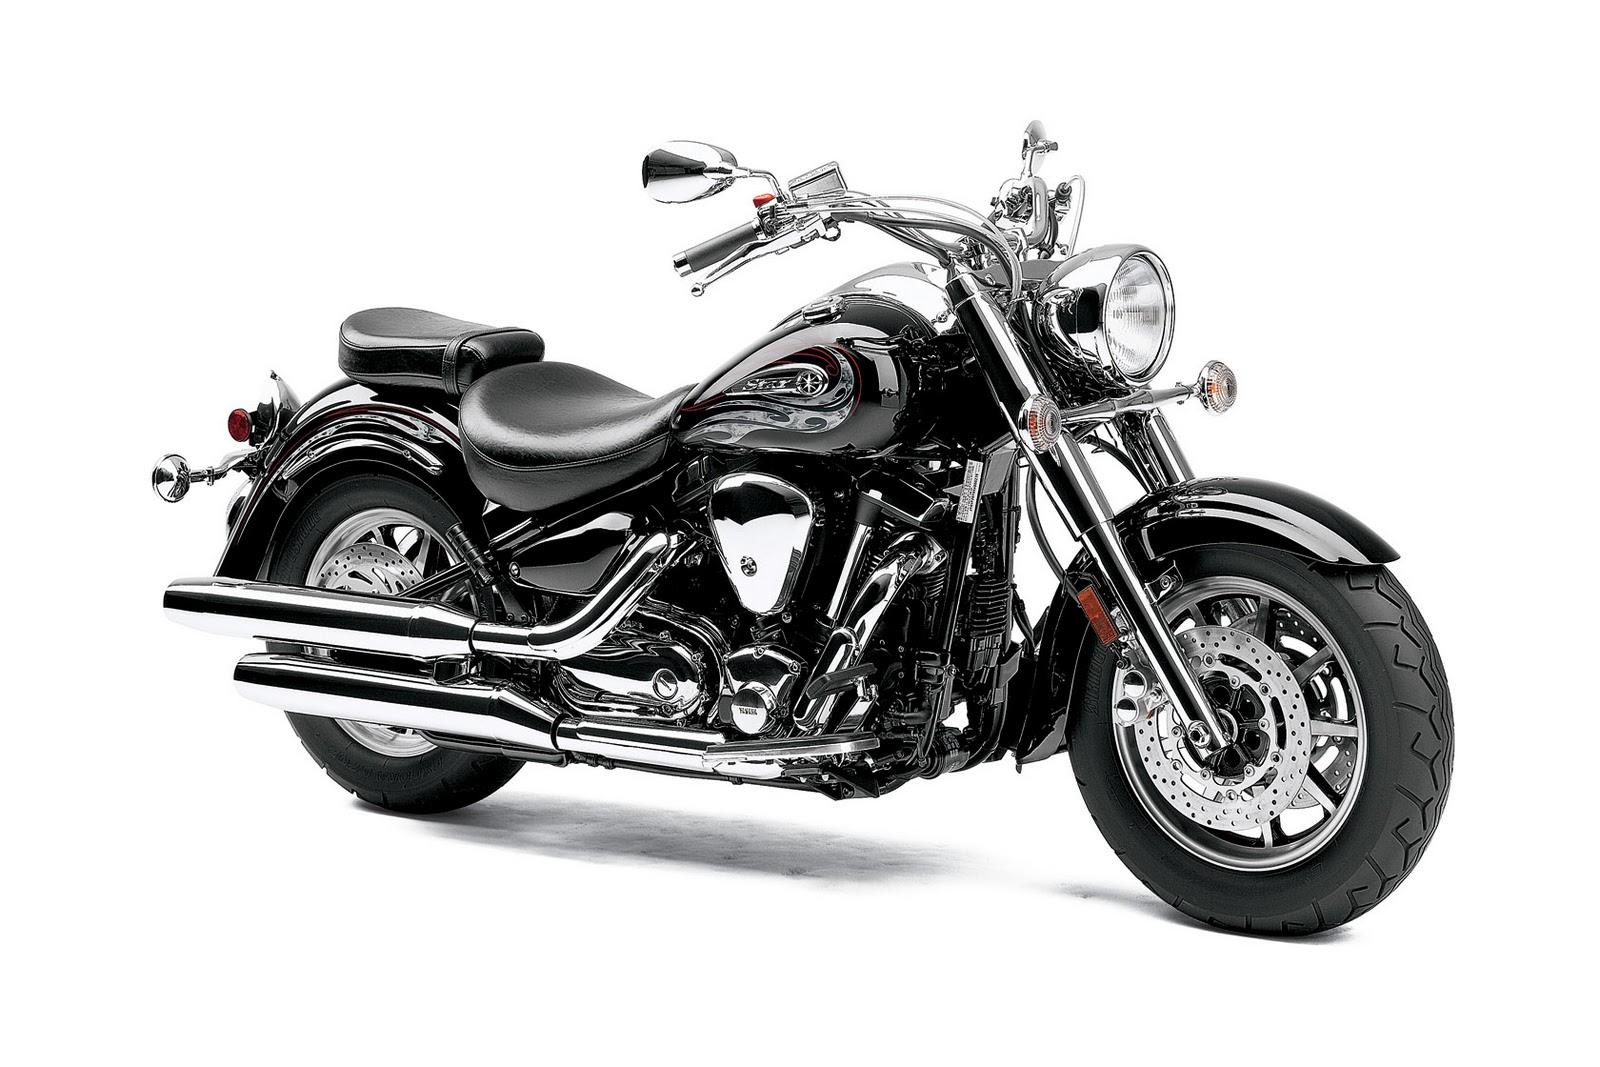 Yamaha motorcycle pictures yamaha road star s 2011 for Yamaha road motorcycles